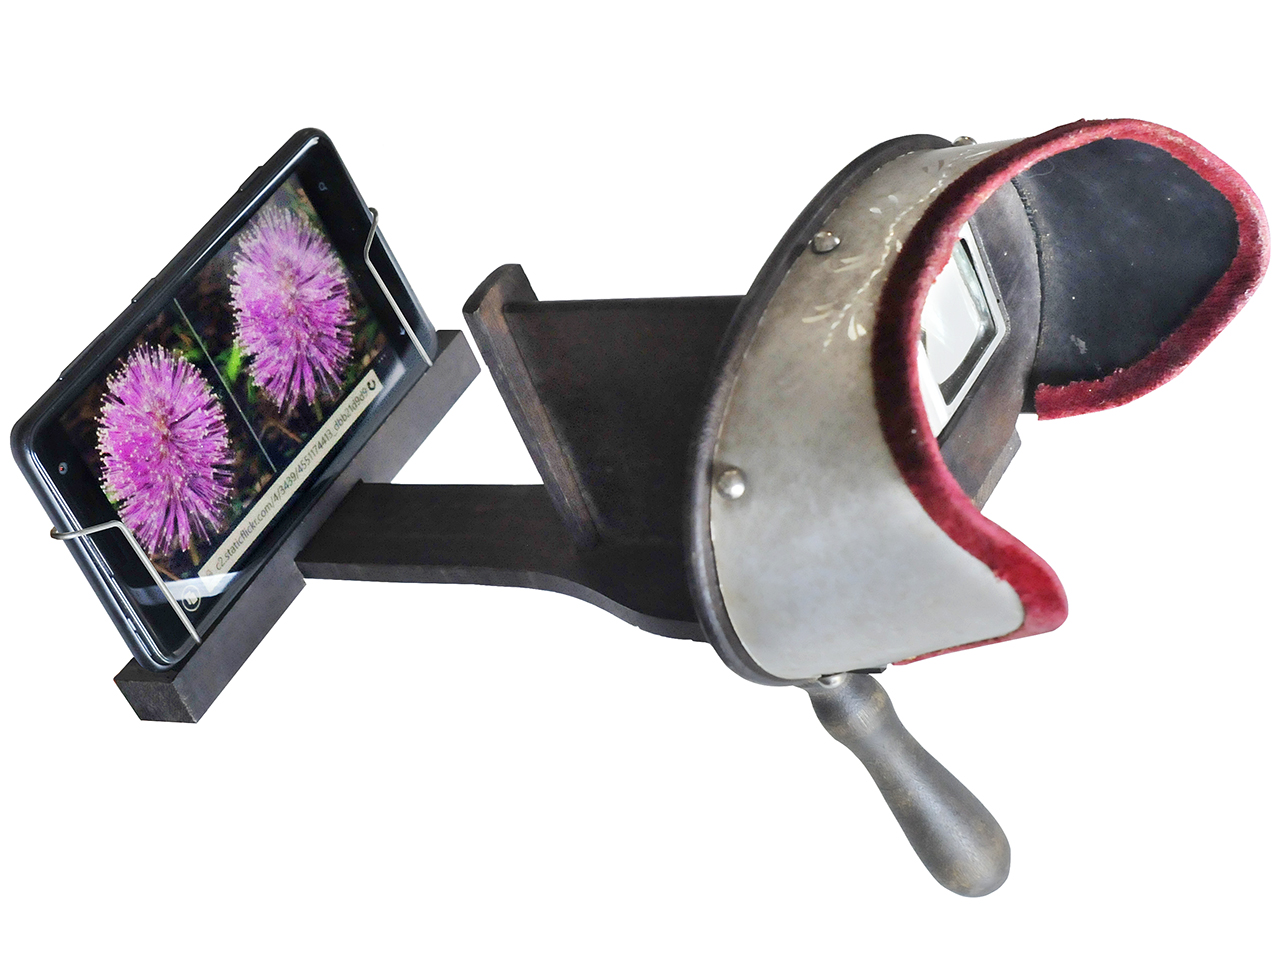 Victorian stereoscope adapted for use with smartphone